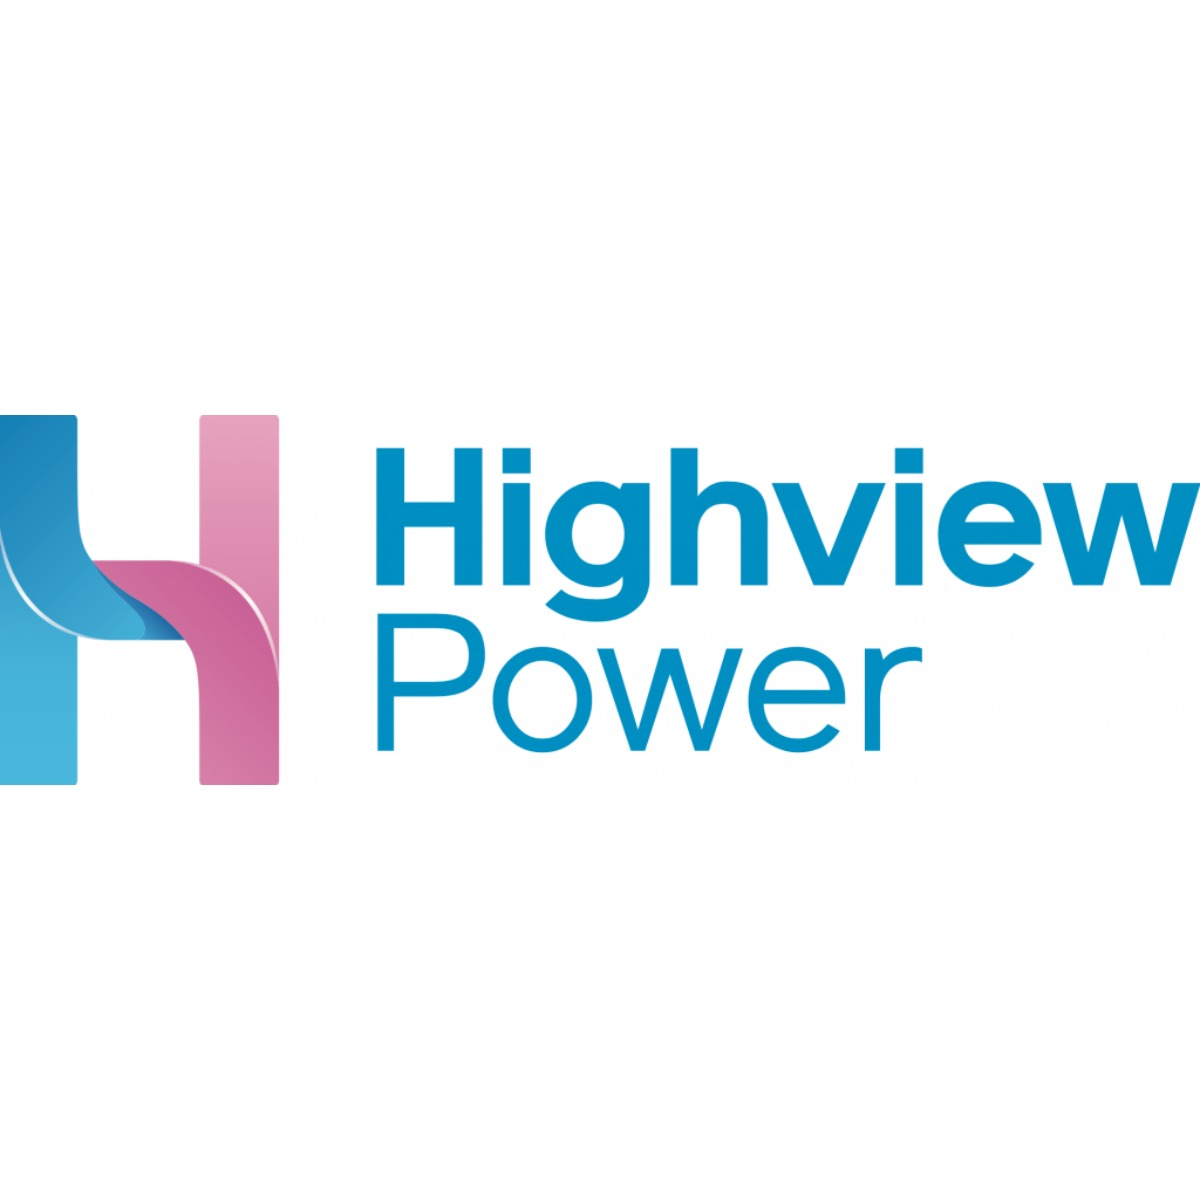 highview_power